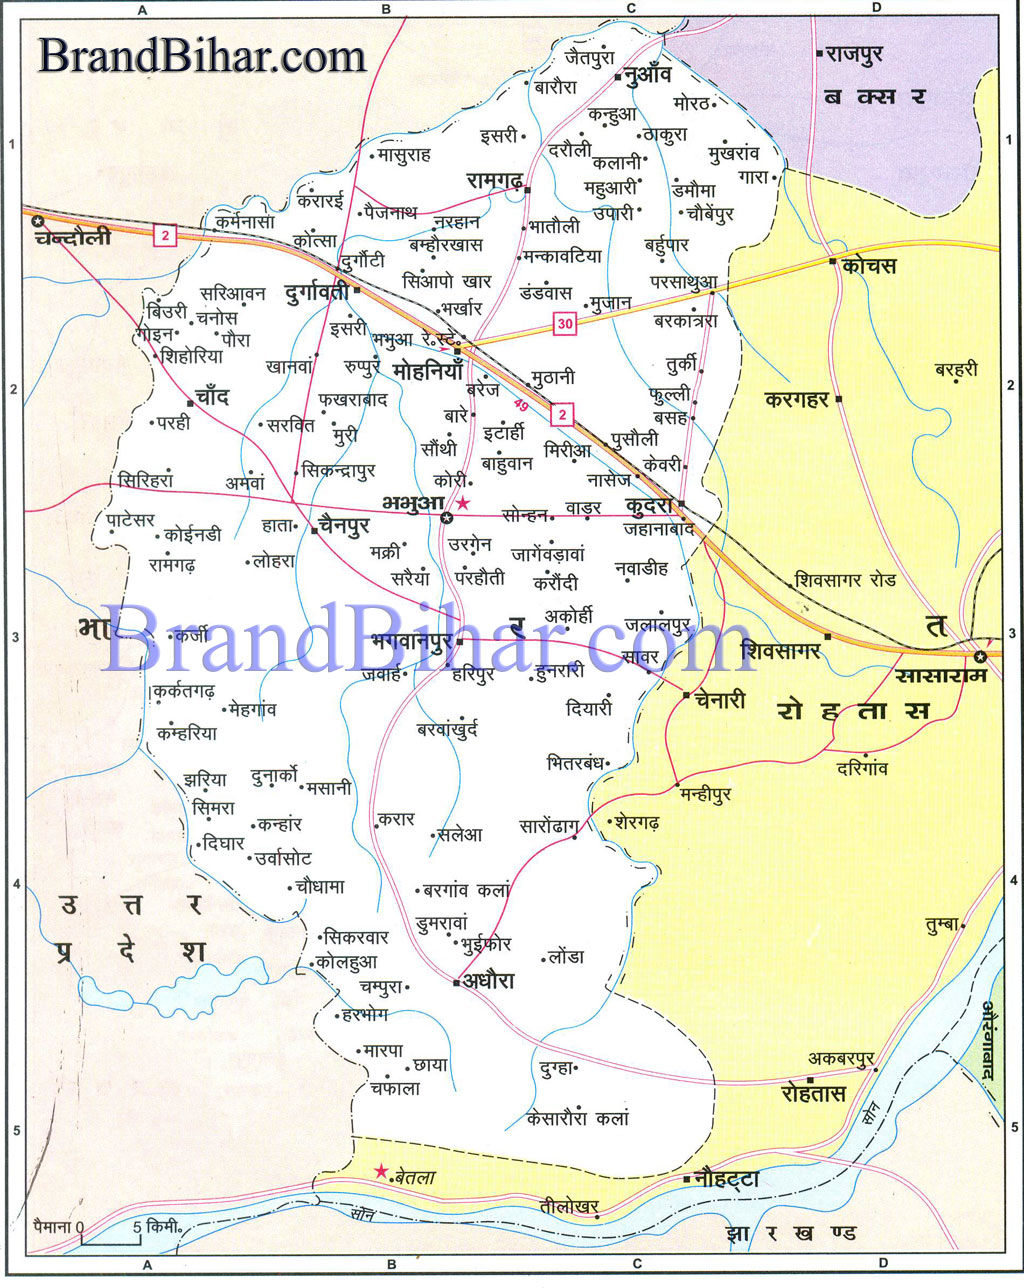 bhabhuar Map Kaimu Map of bhabhua Bihar bhabhua District Map